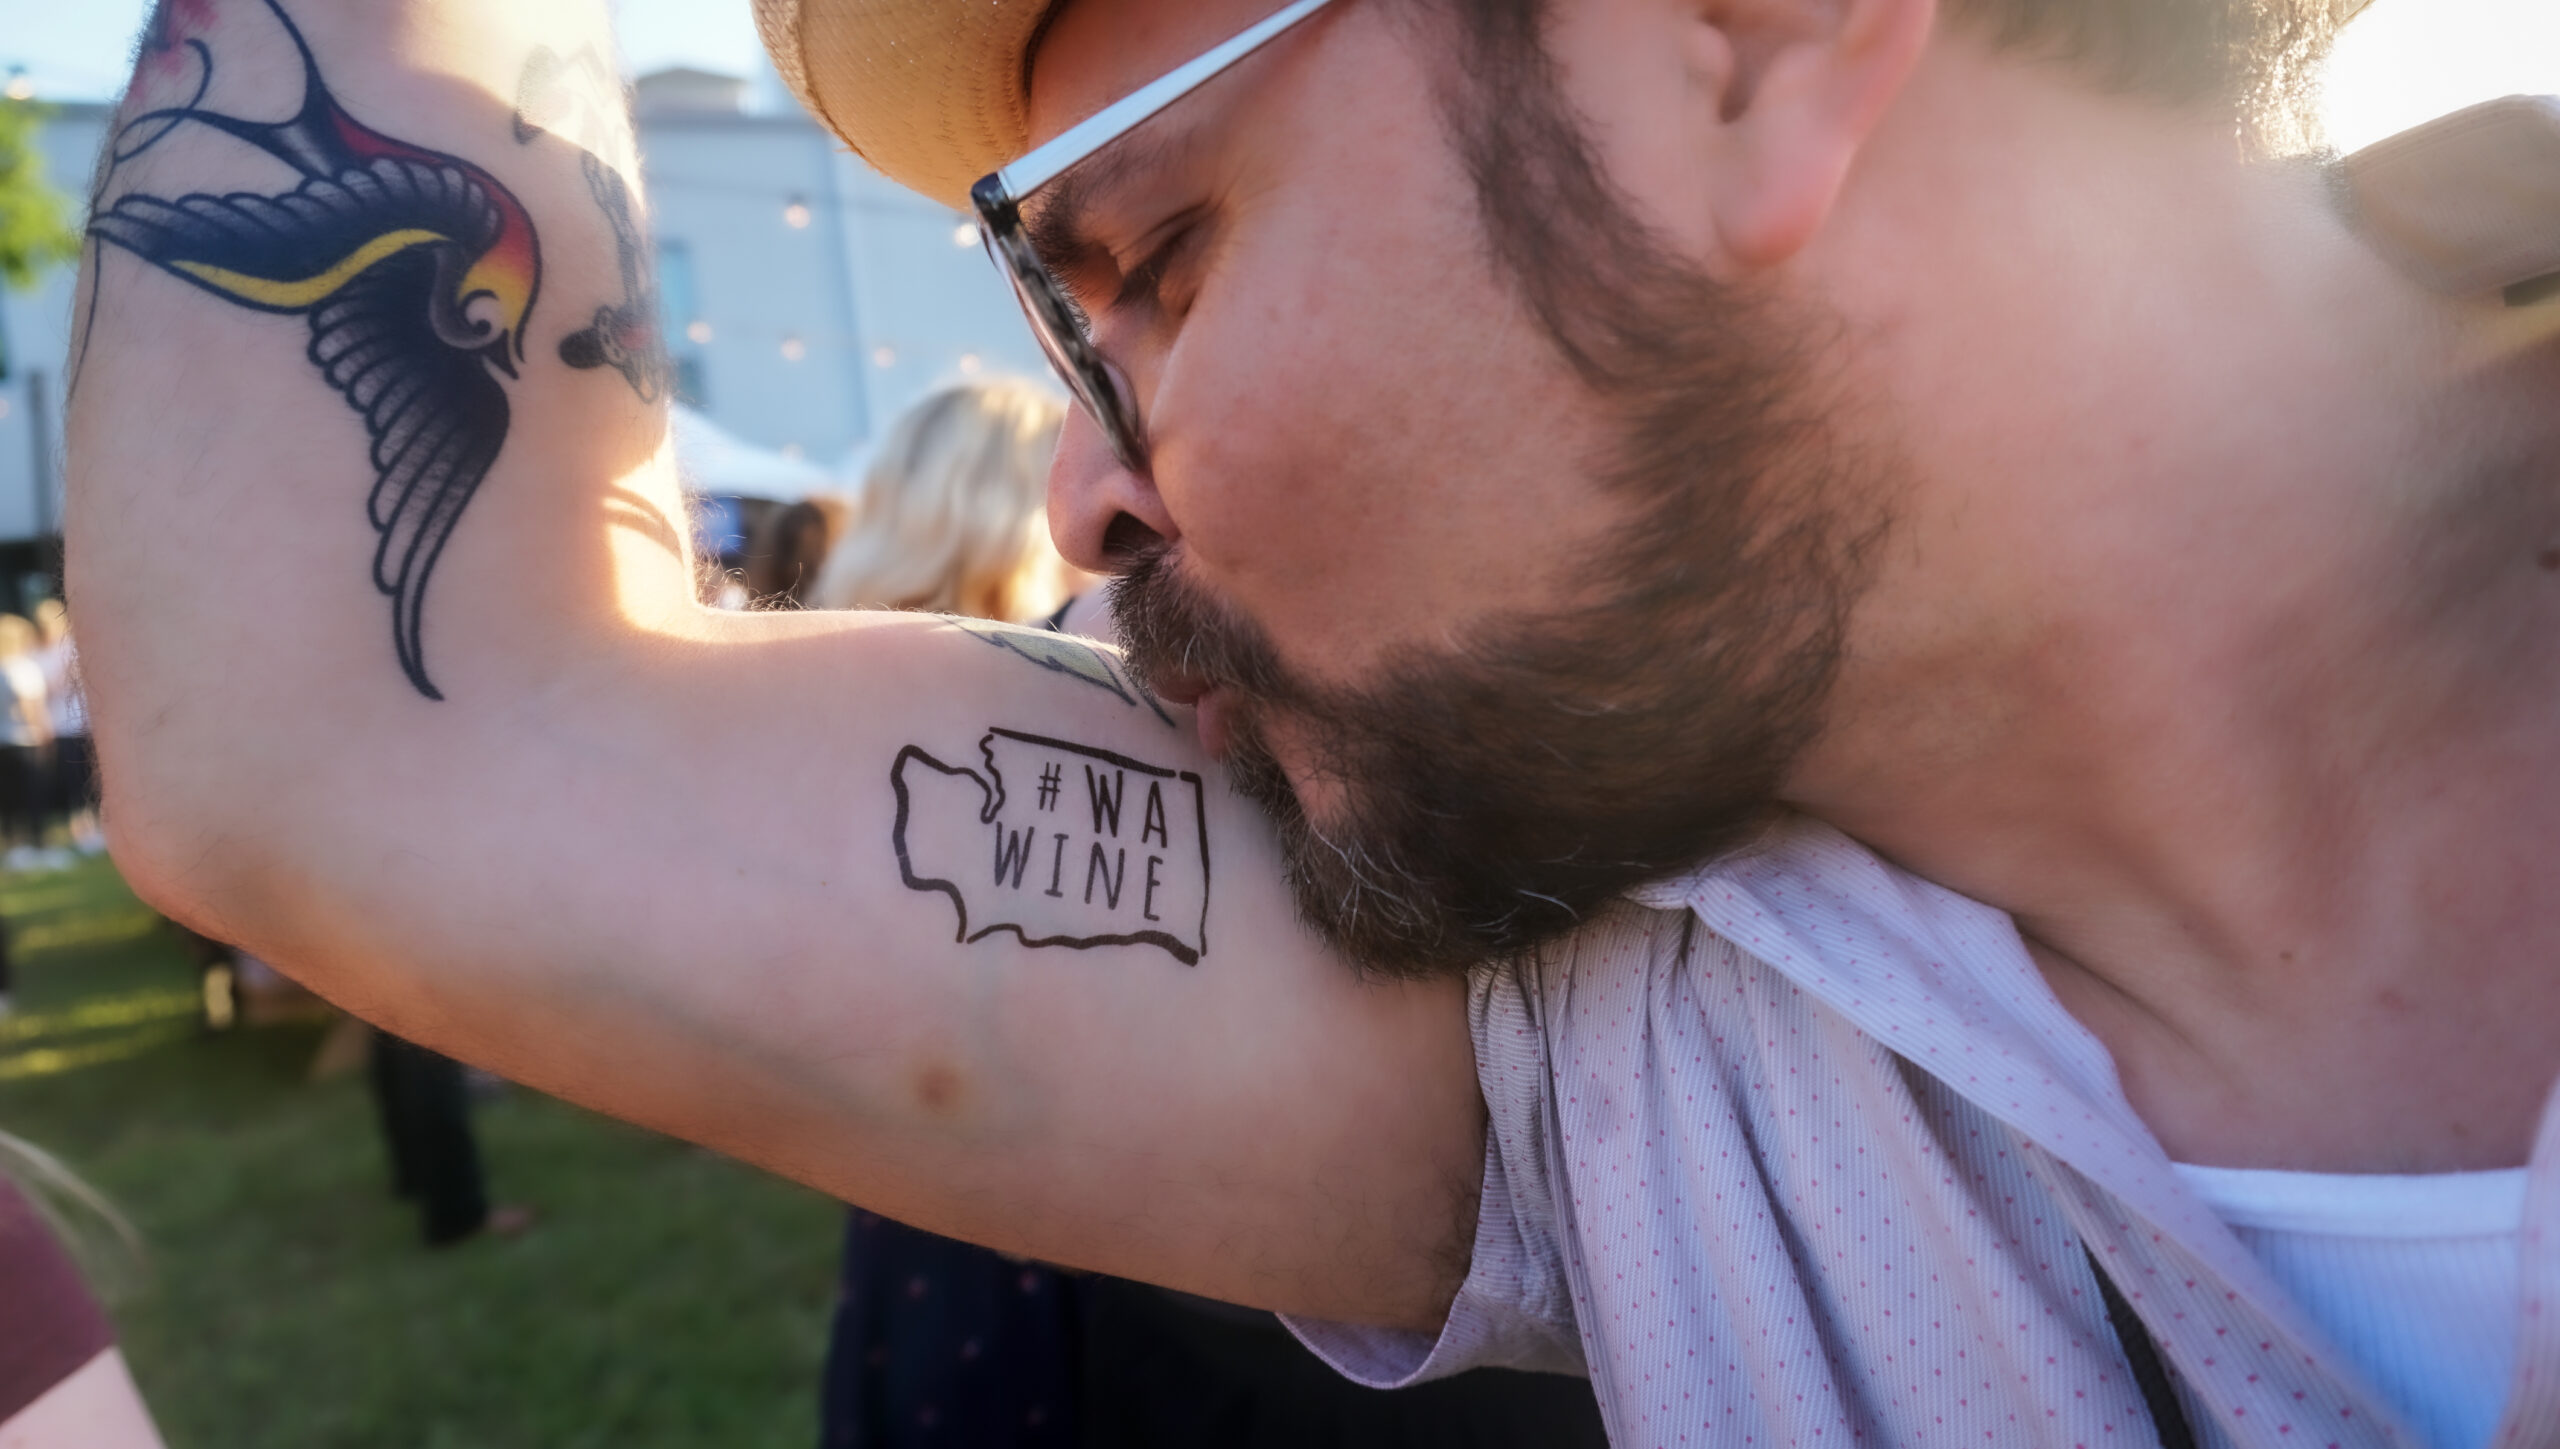 A man with a beard, glasses, and sun hat kisses his bicep where there is a WA Wine temporary tattoo.